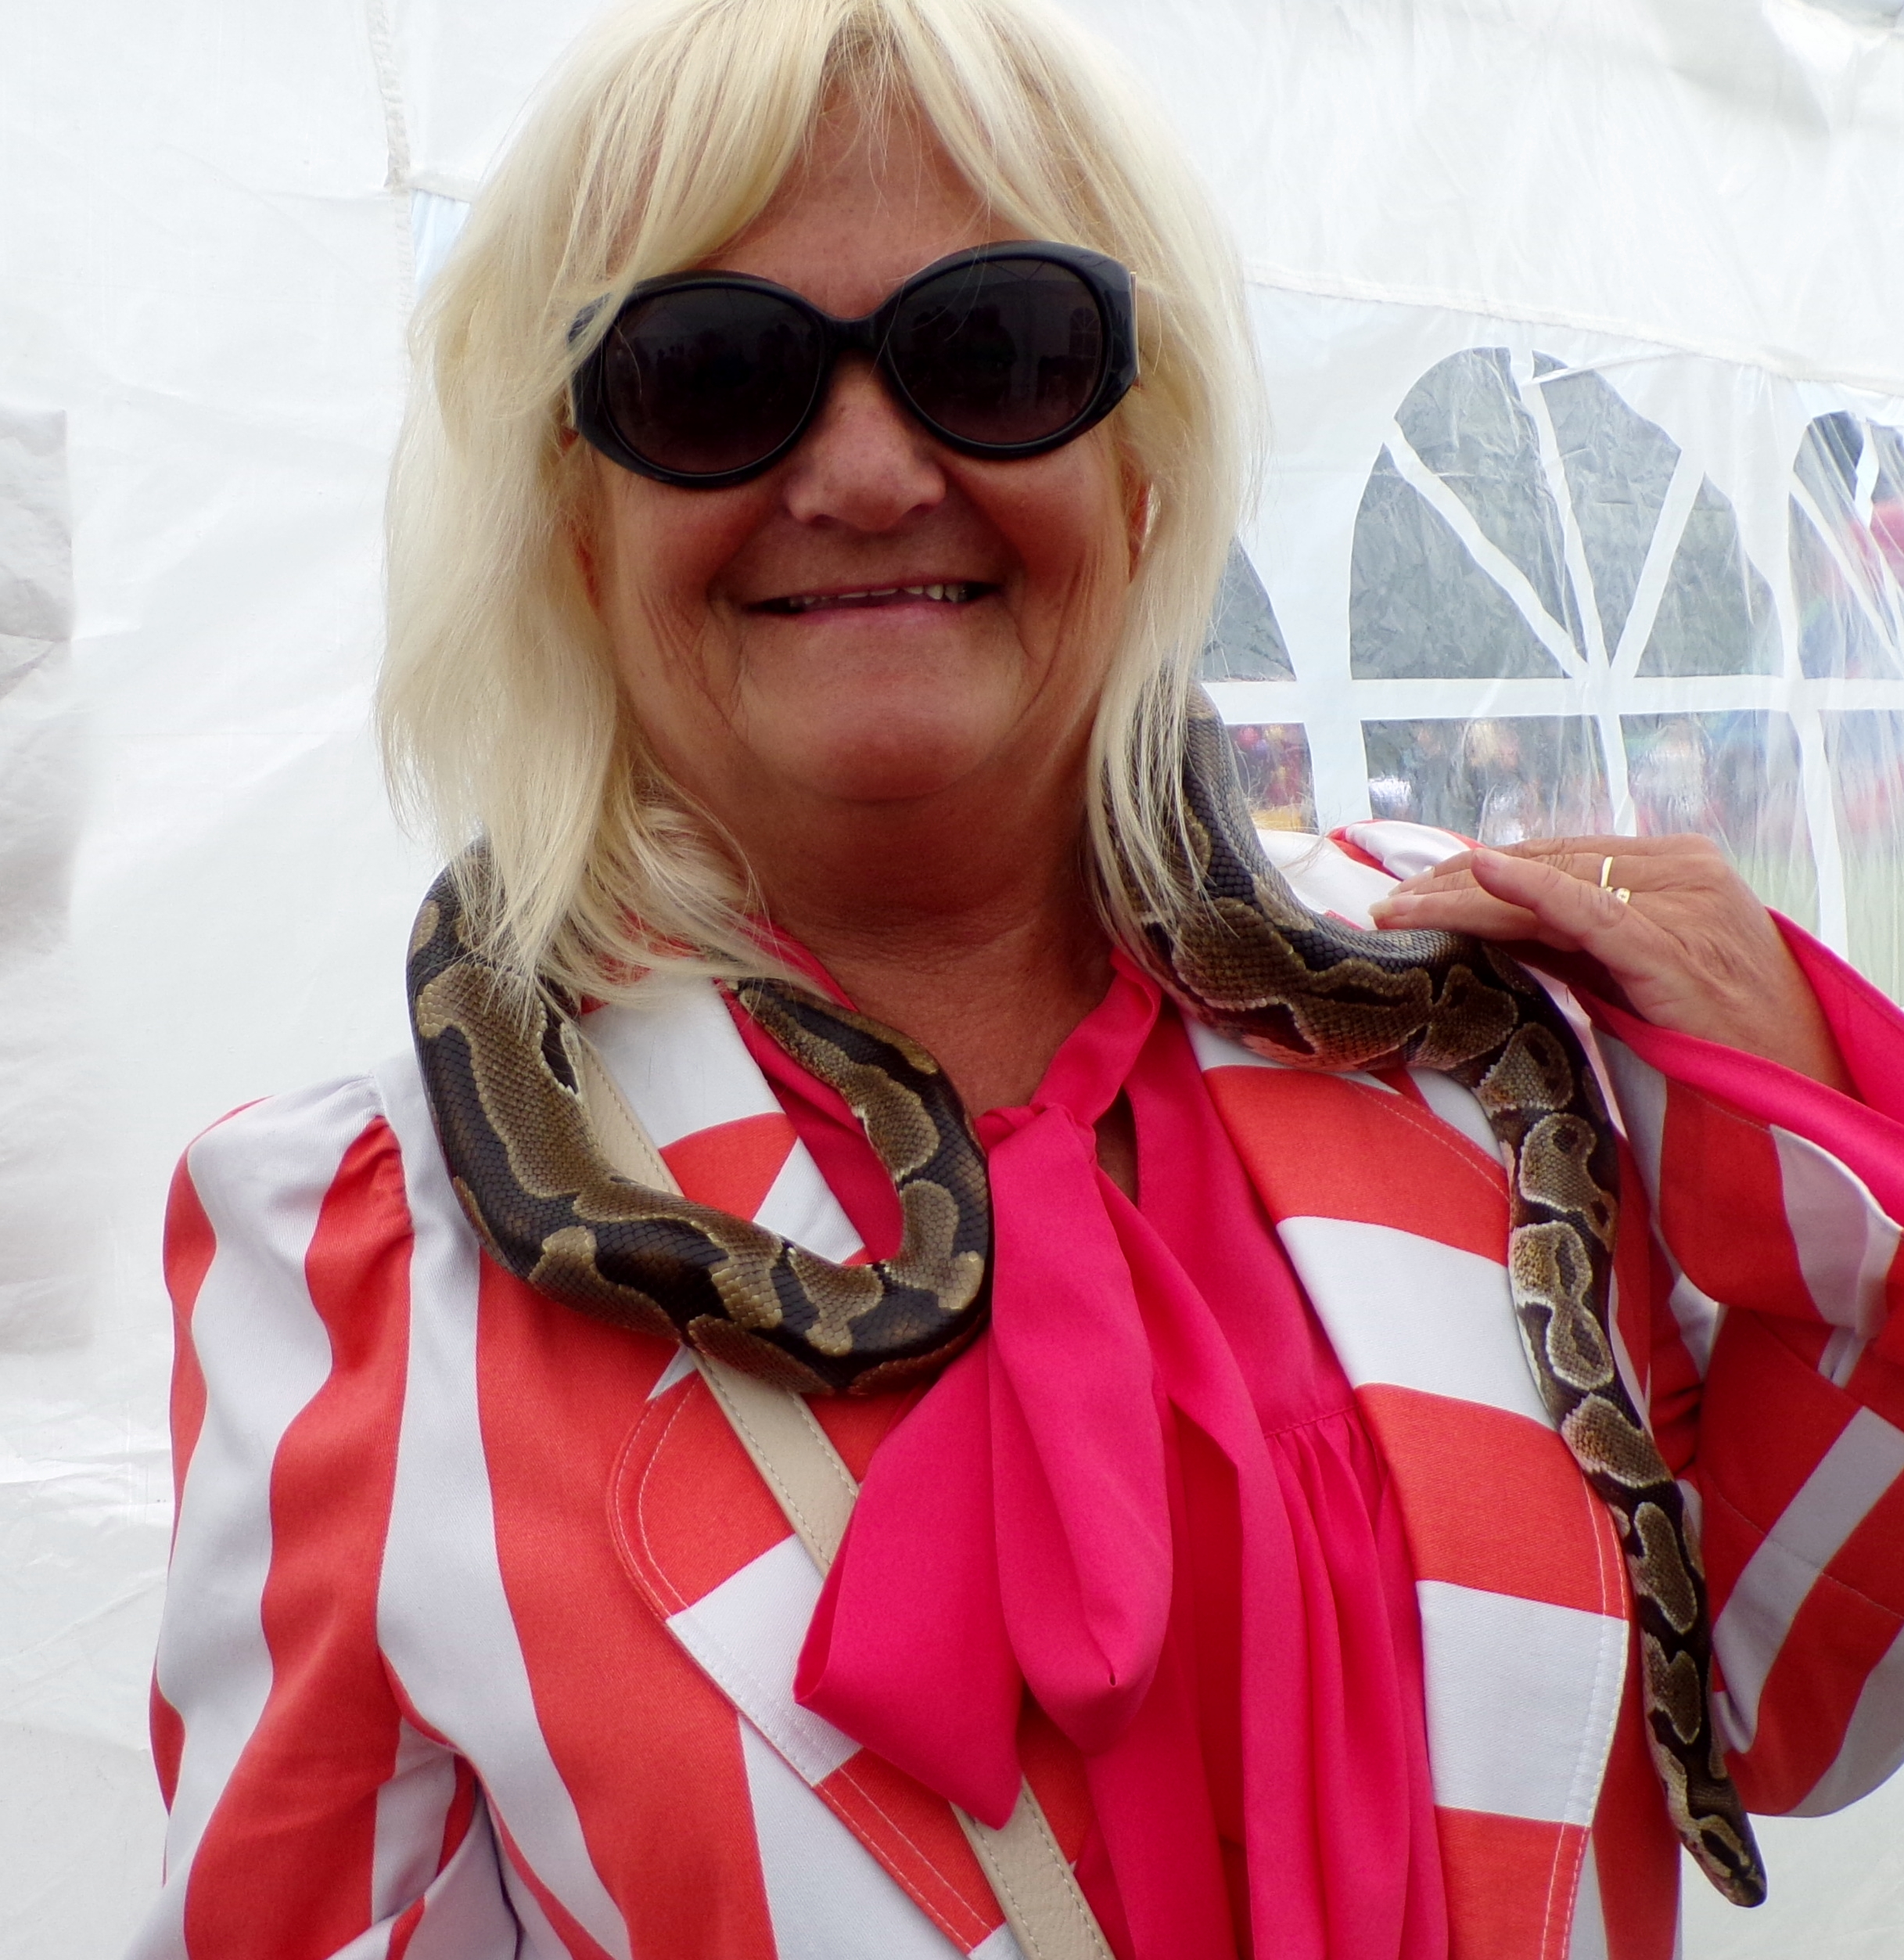 cllr james with a snake